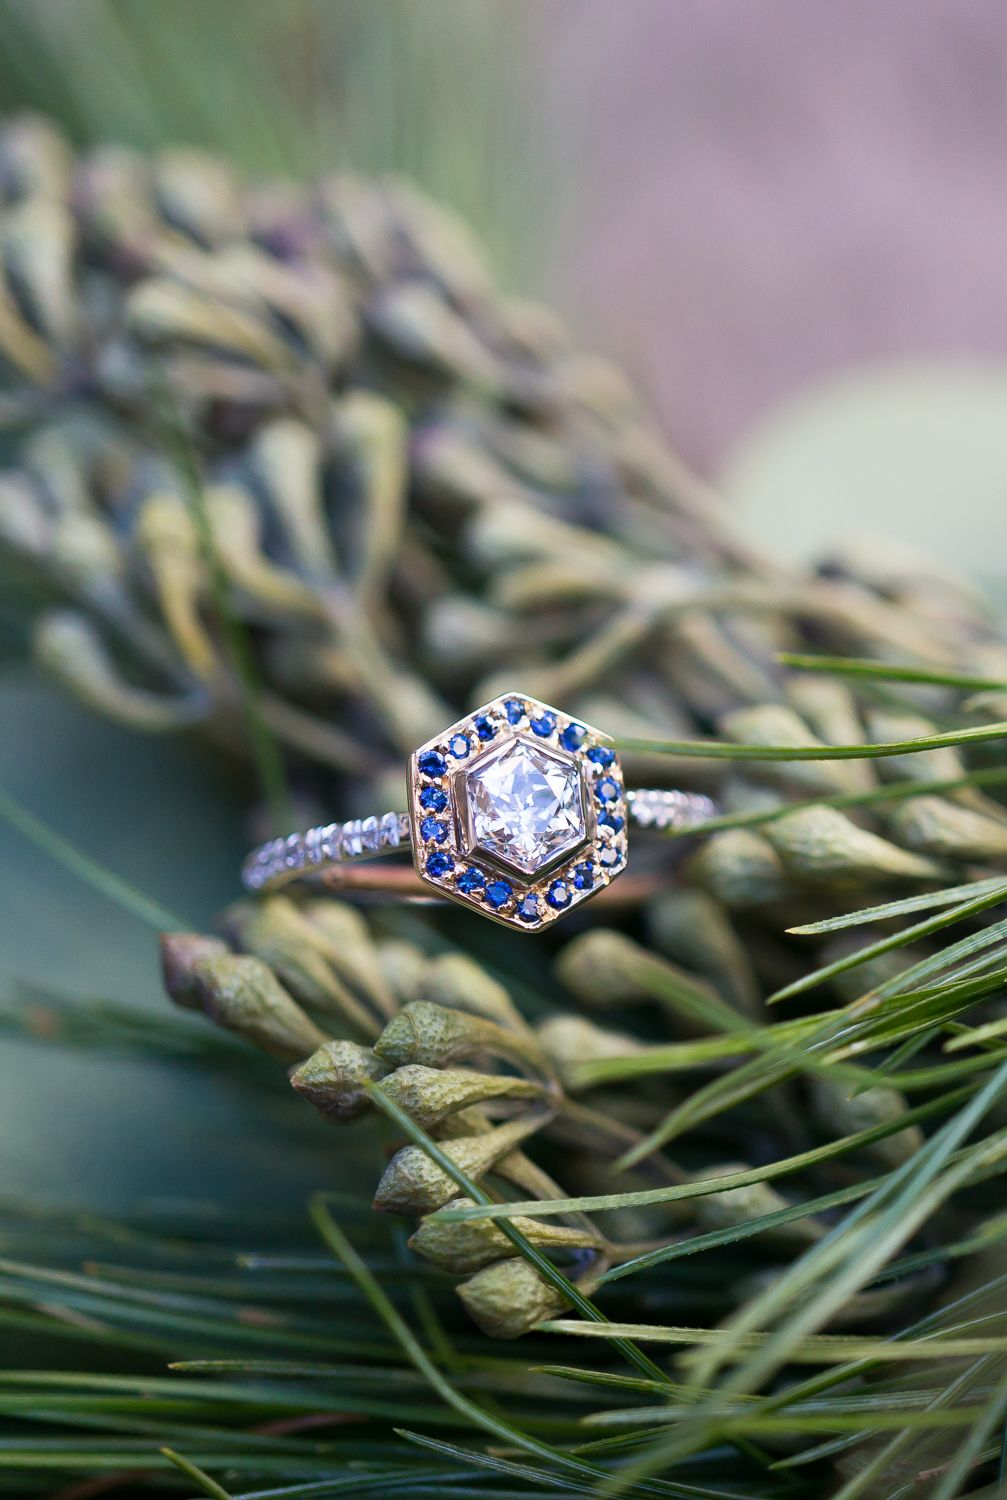 A unique vintage hexagonal Diamond Engagement Ring with a Sapphire Halo handcrafted by S.Kind & Co. in new york.